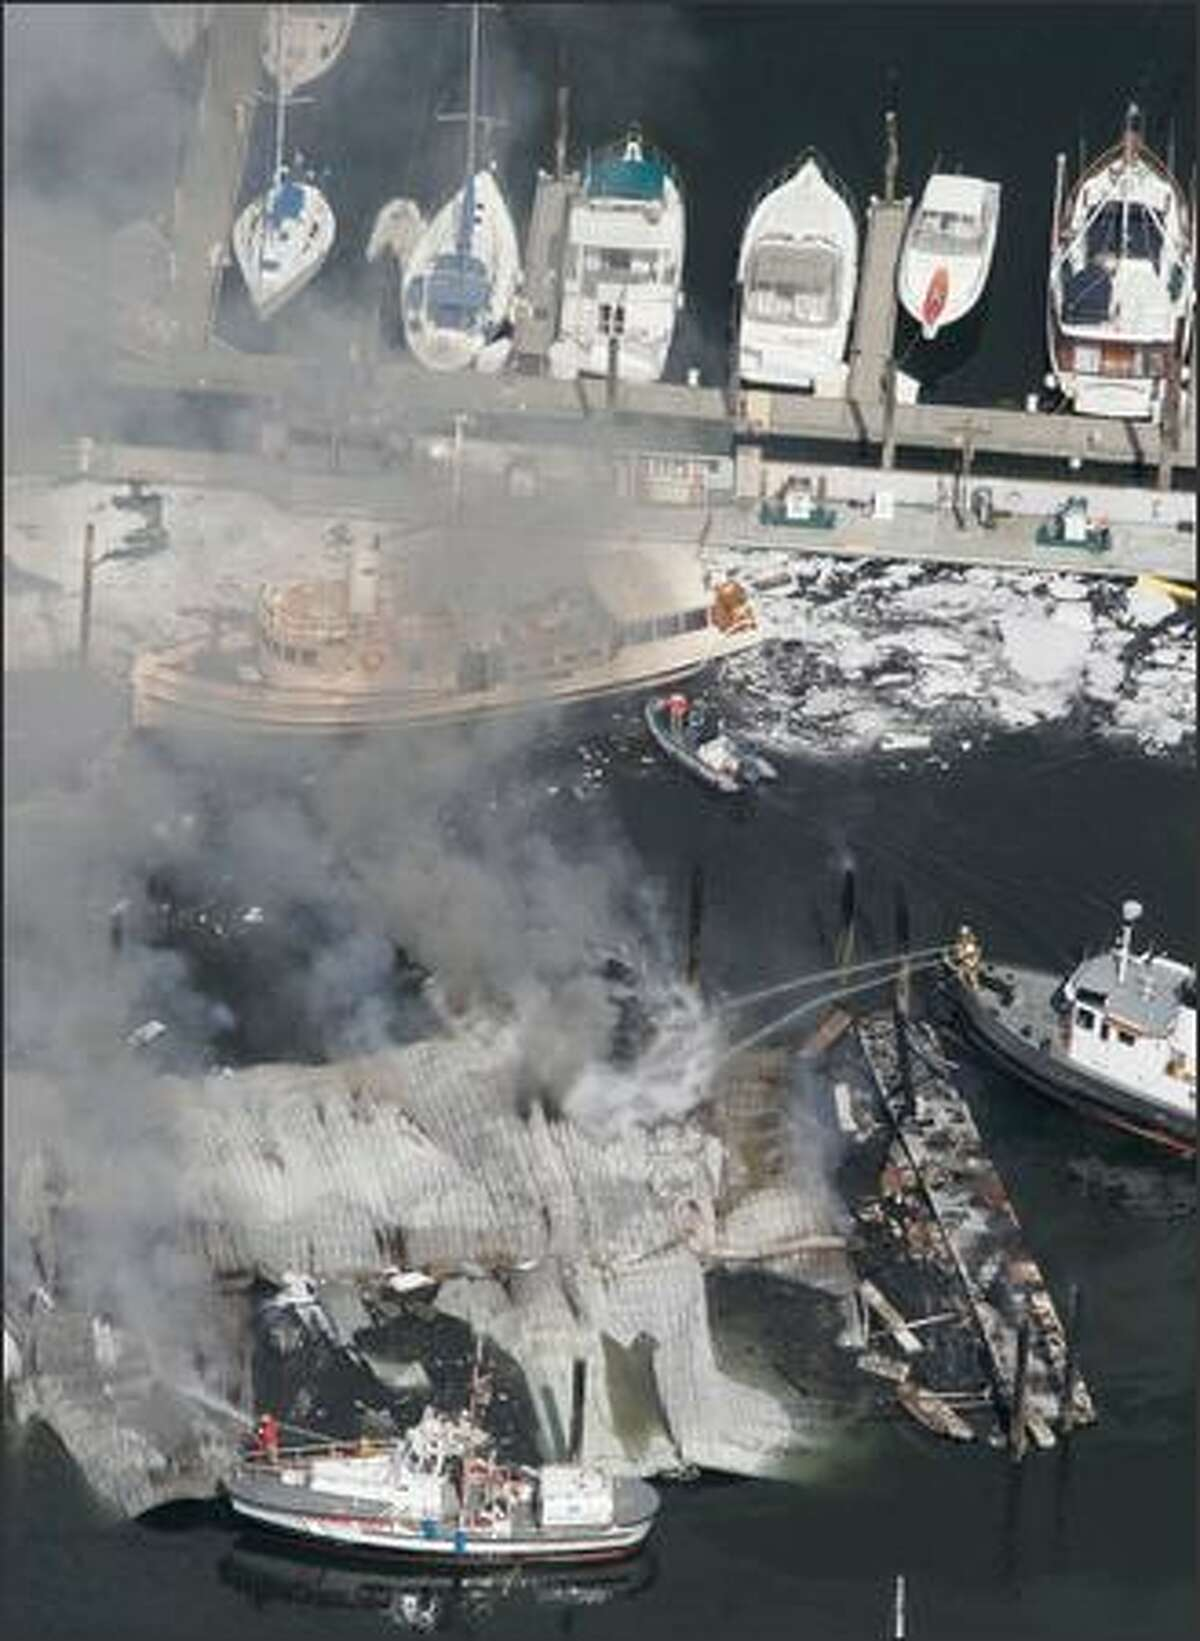 Firefighters work to control a fire at the Harborview Marina in Gig Harbor. More than 50 boats burned in the blaze.